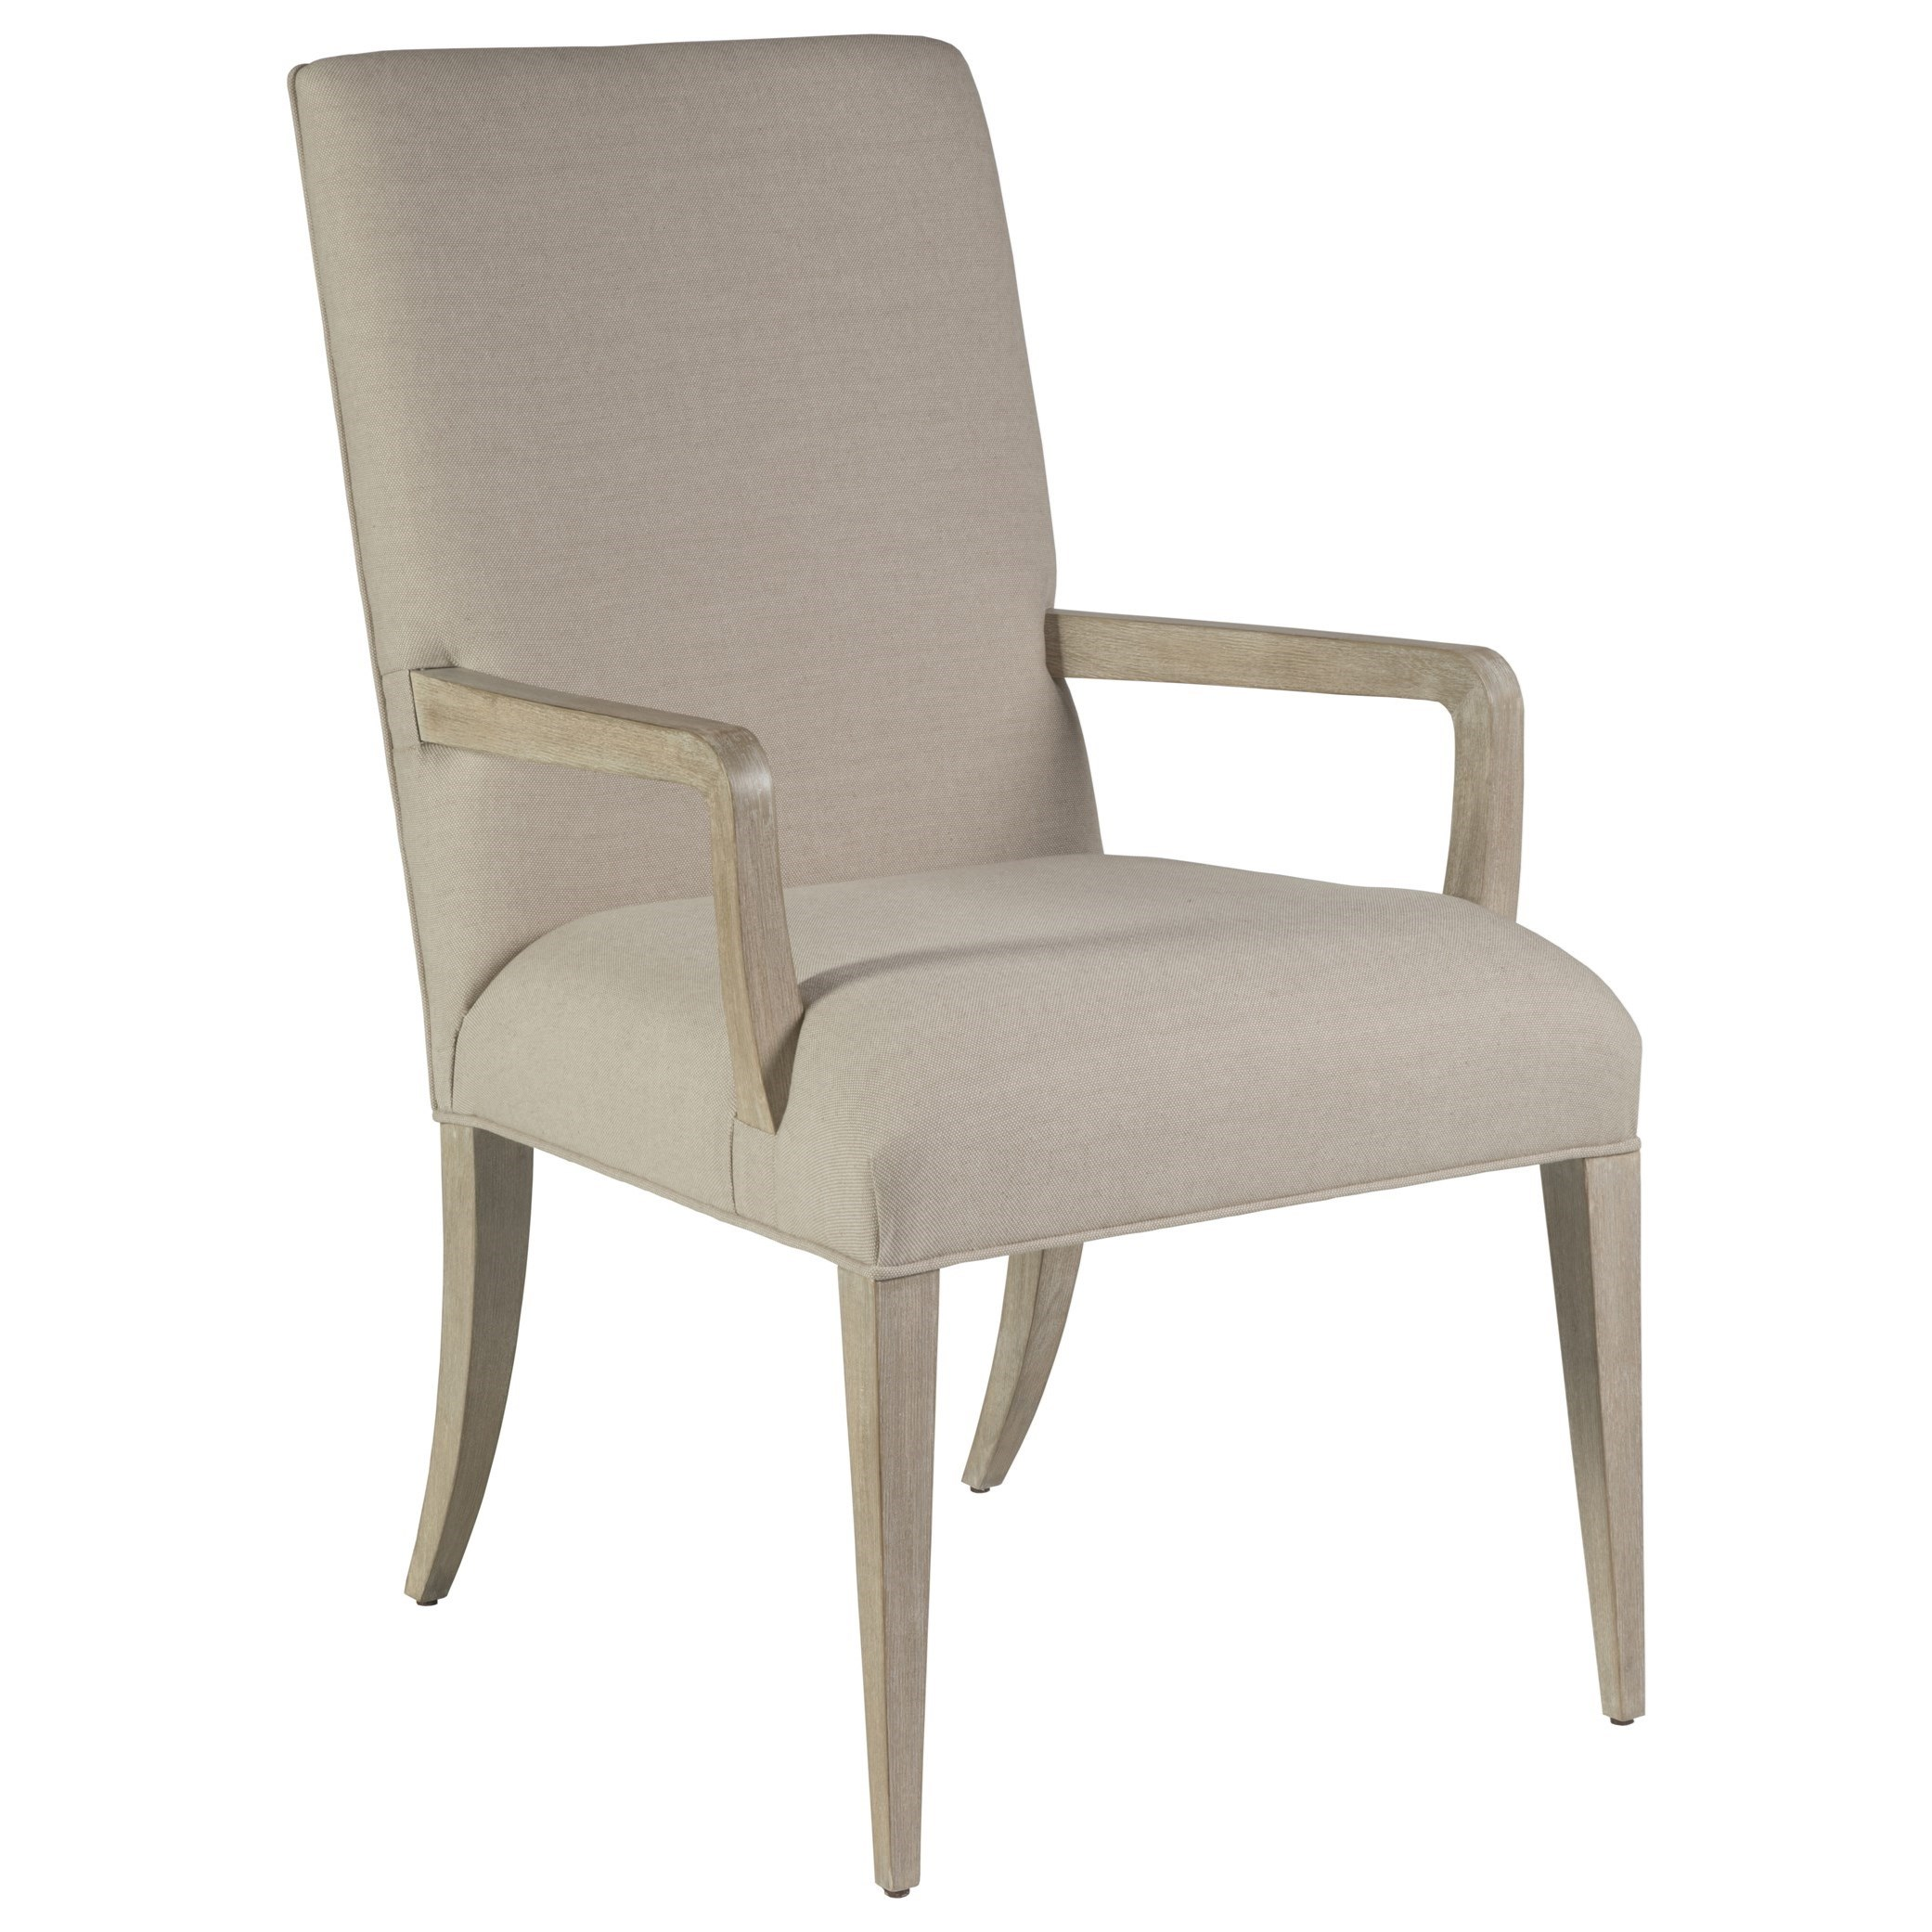 Cohesion Madox Upholstered Arm Chair by Artistica at Alison Craig Home Furnishings